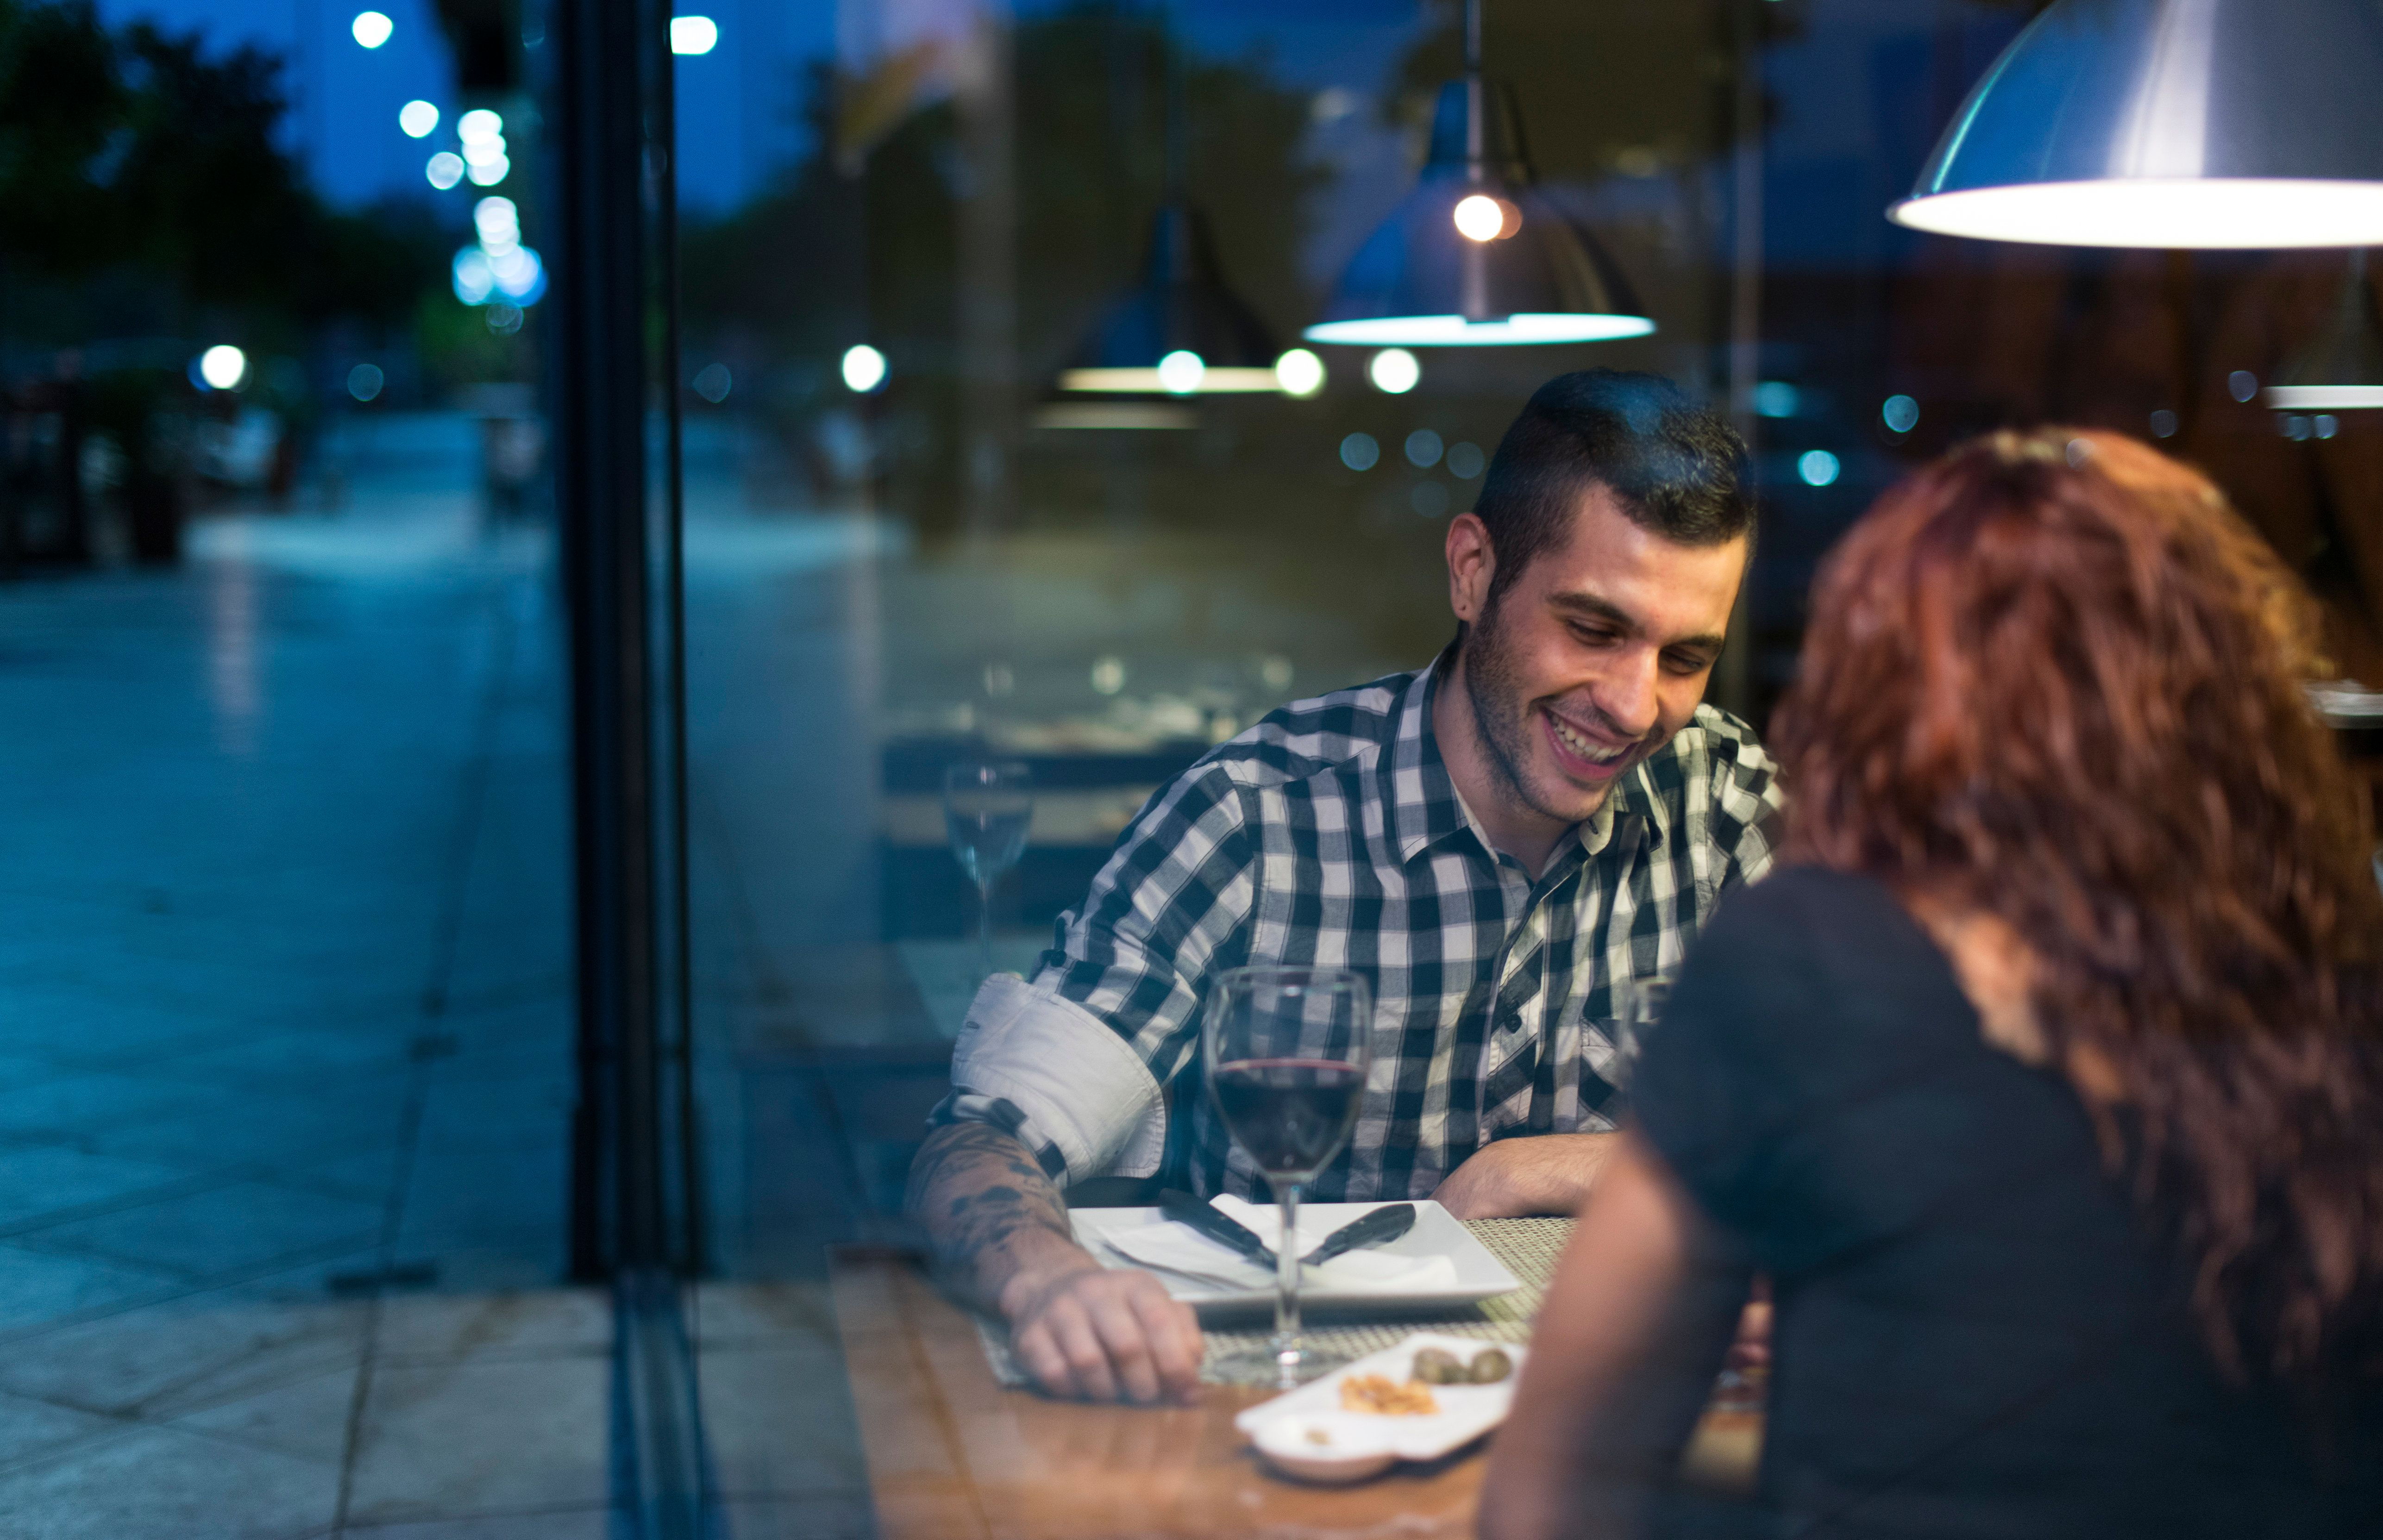 Online and offline dating aren't the easiest when you're legally blind.